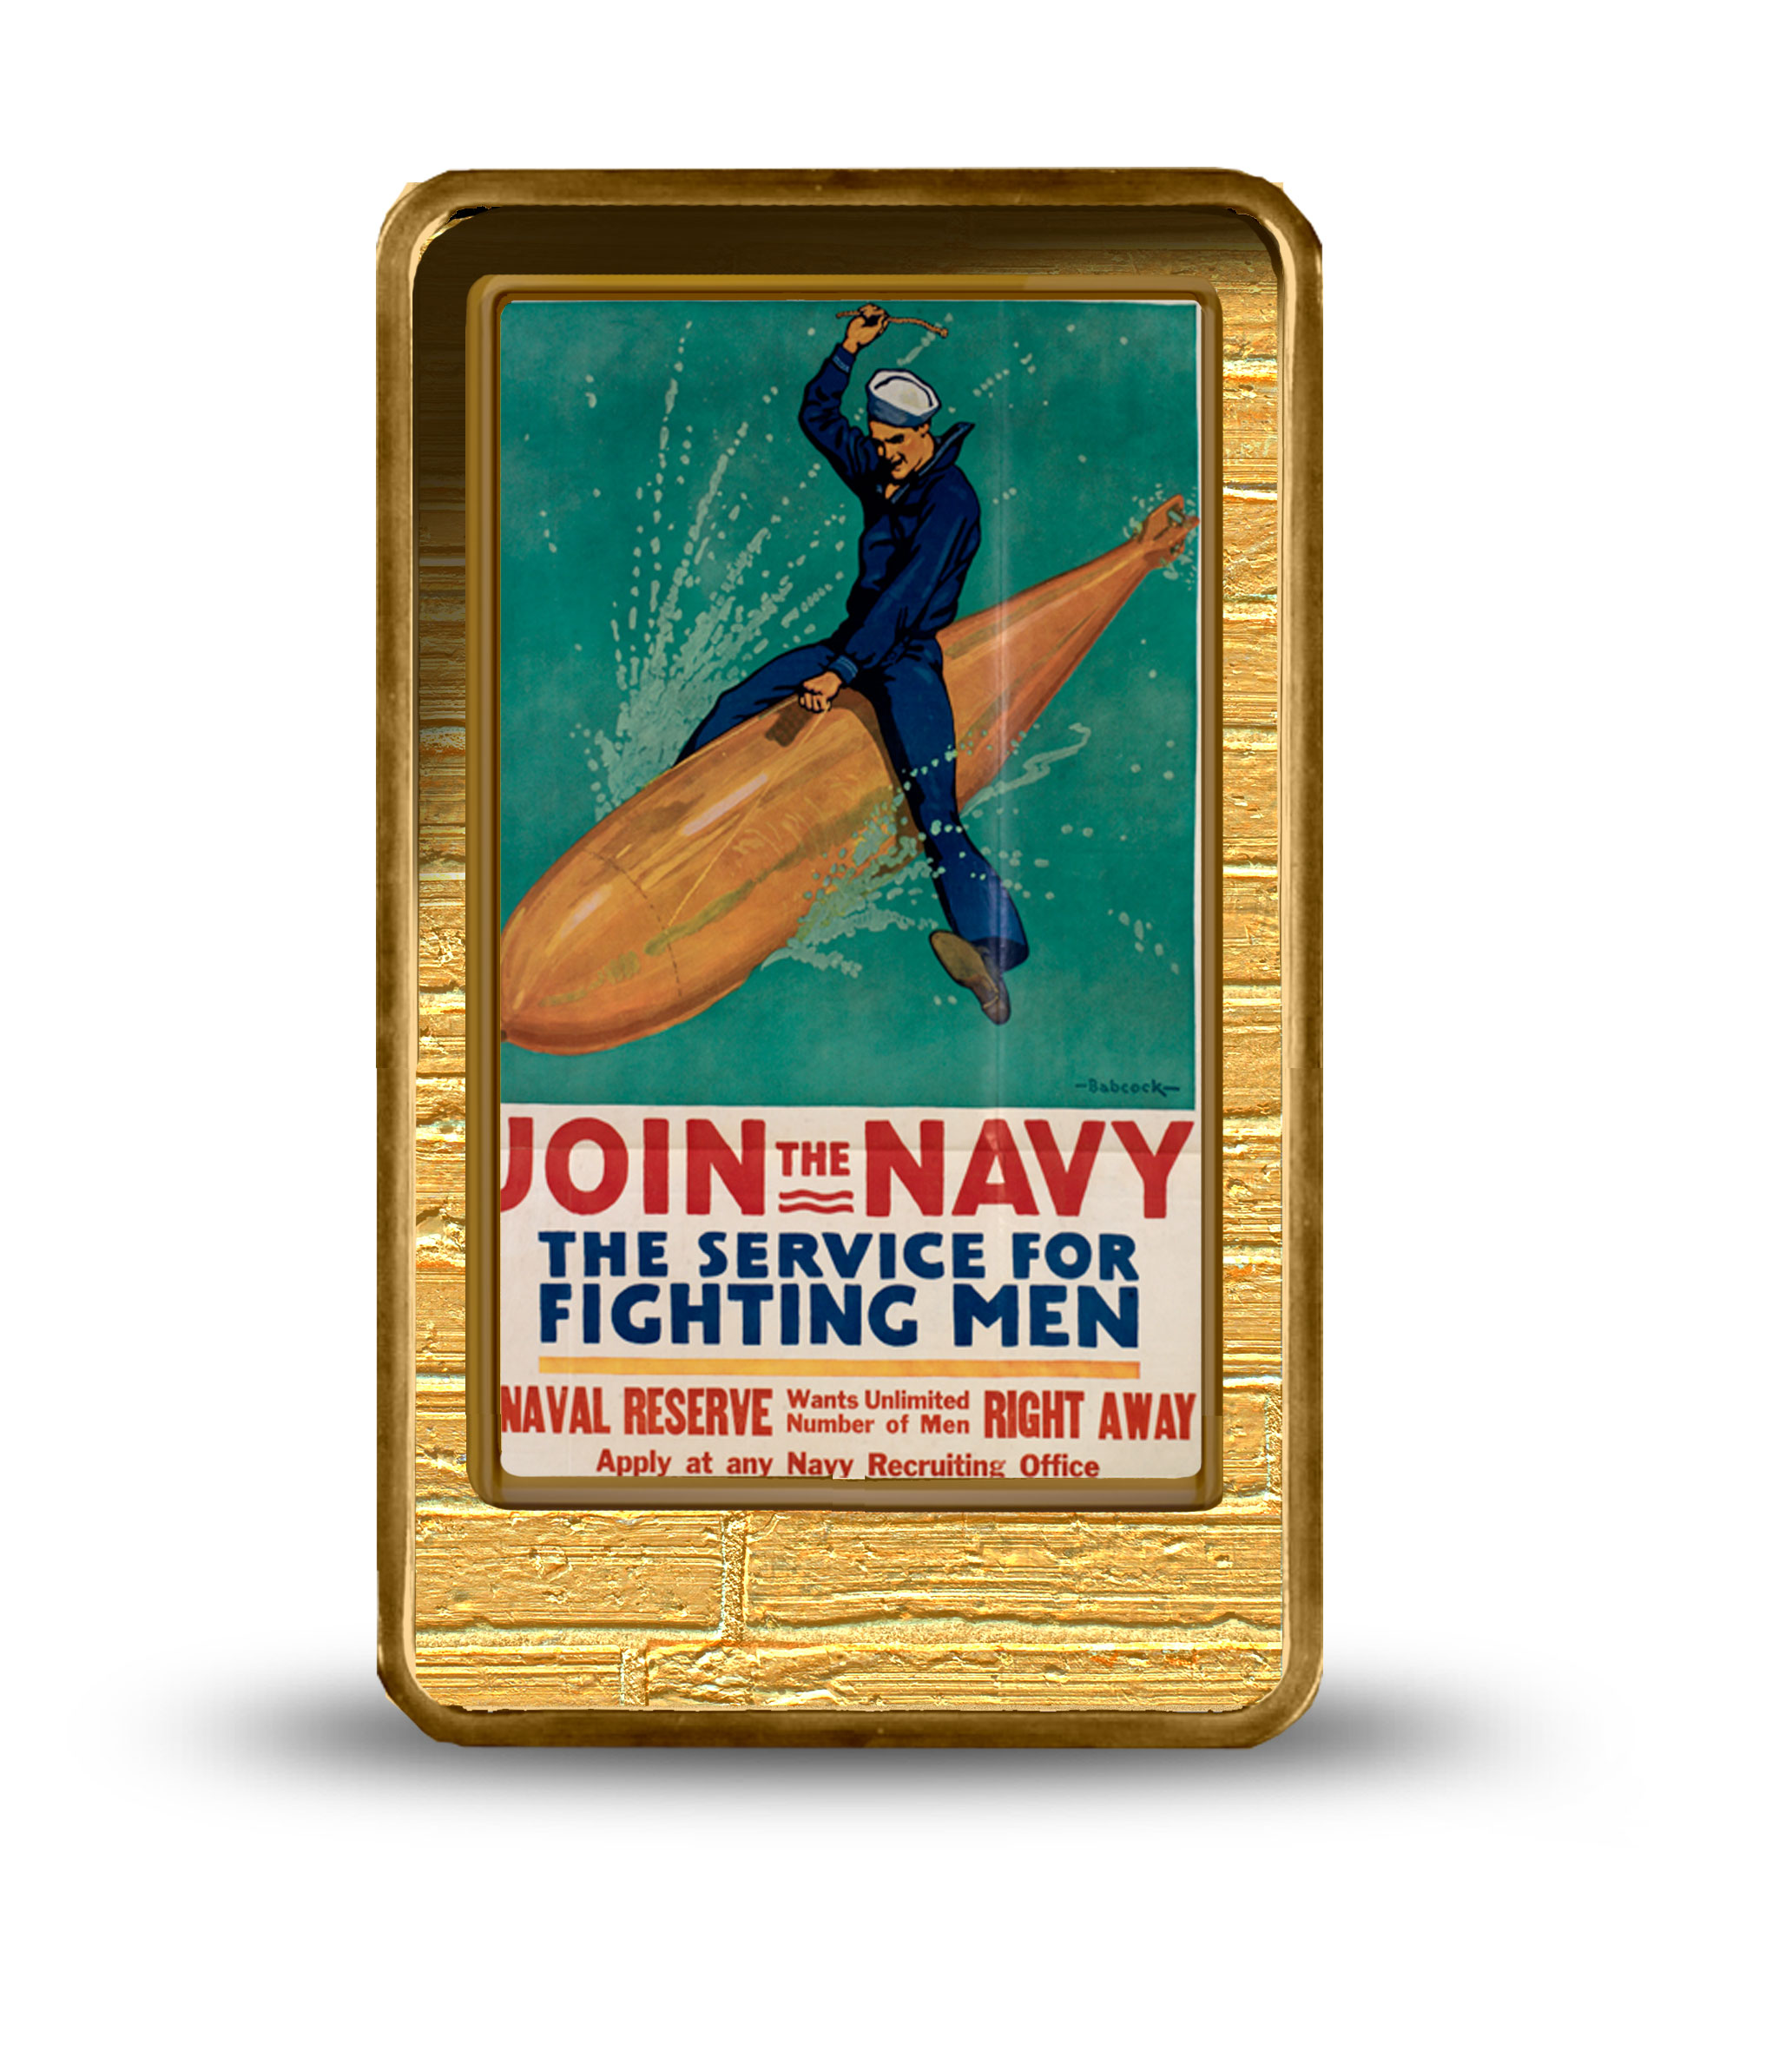 <p>Join the Navy</p>